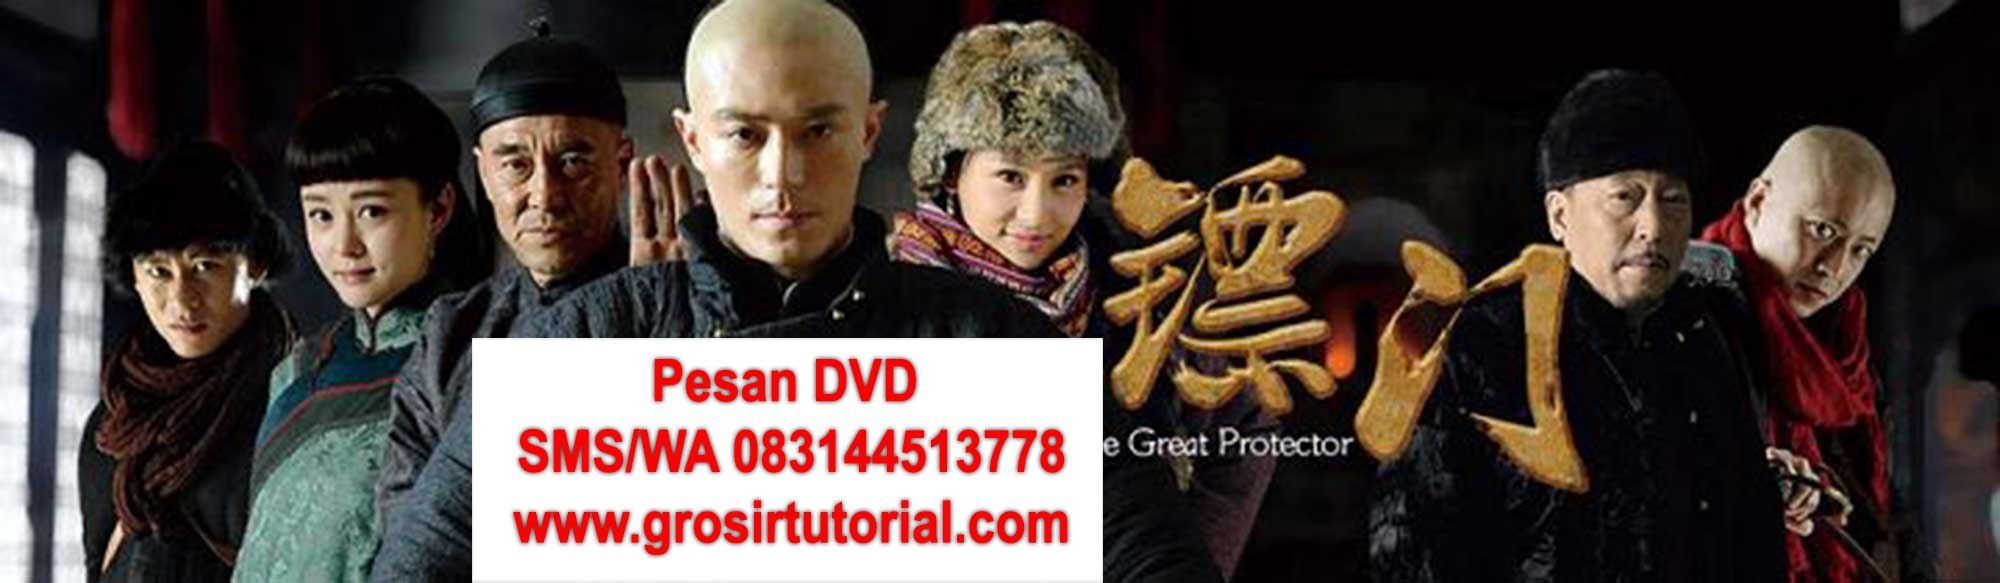 beli-DVd-mandarin-The-Great-Protector